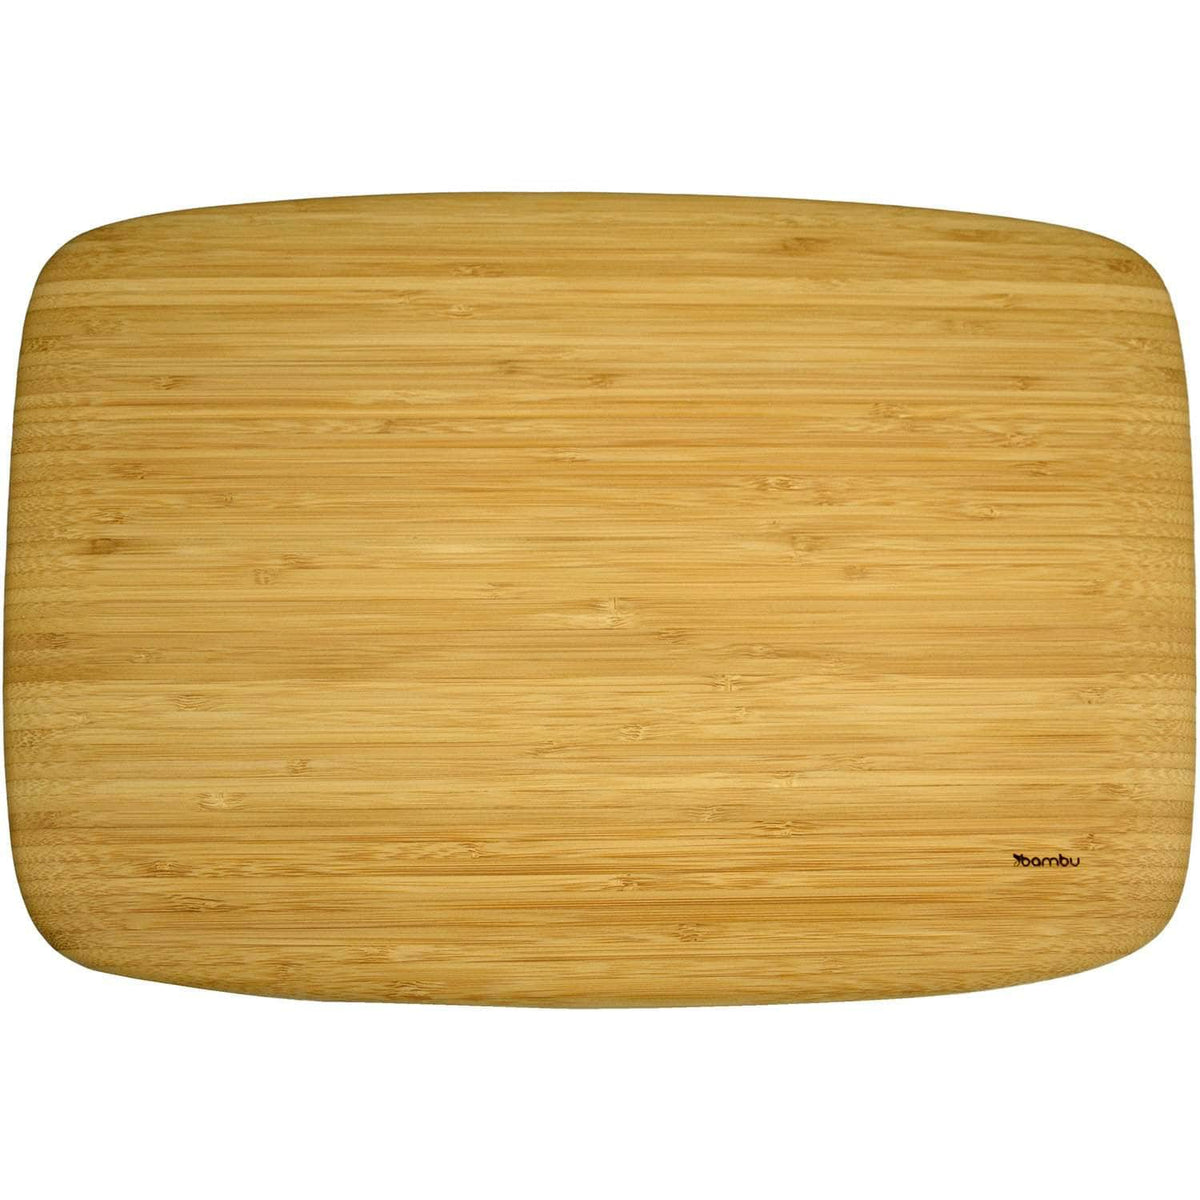 *NEW* Classic bamboo cutting & serving boards Large